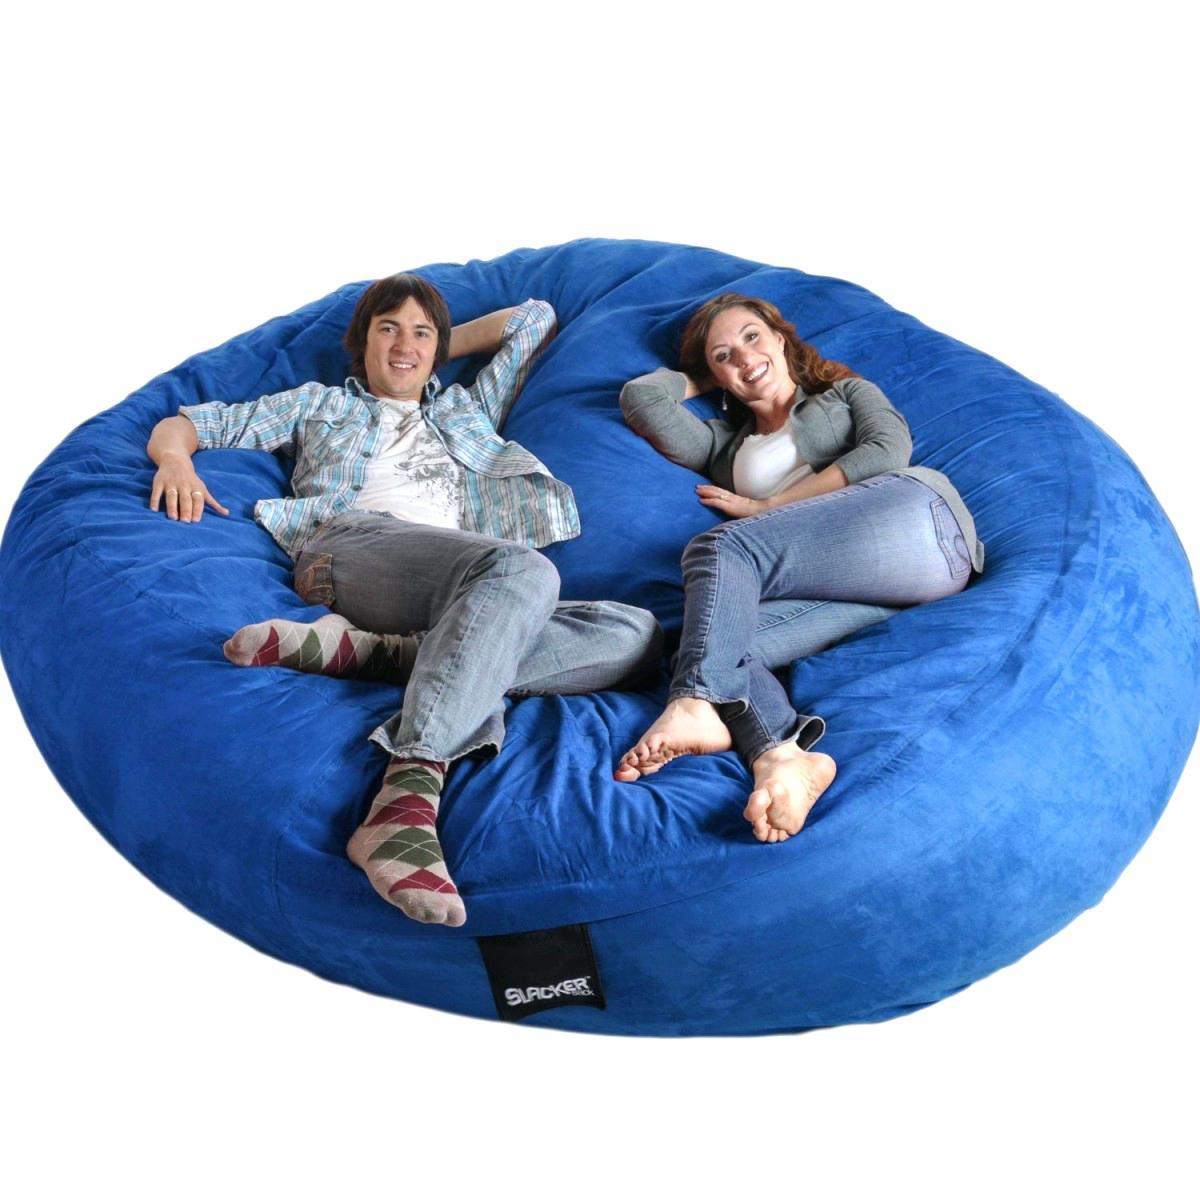 Giant Bean Bag Bed | Design Your Life Throughout Bean Bag Sofas And Chairs (View 16 of 20)